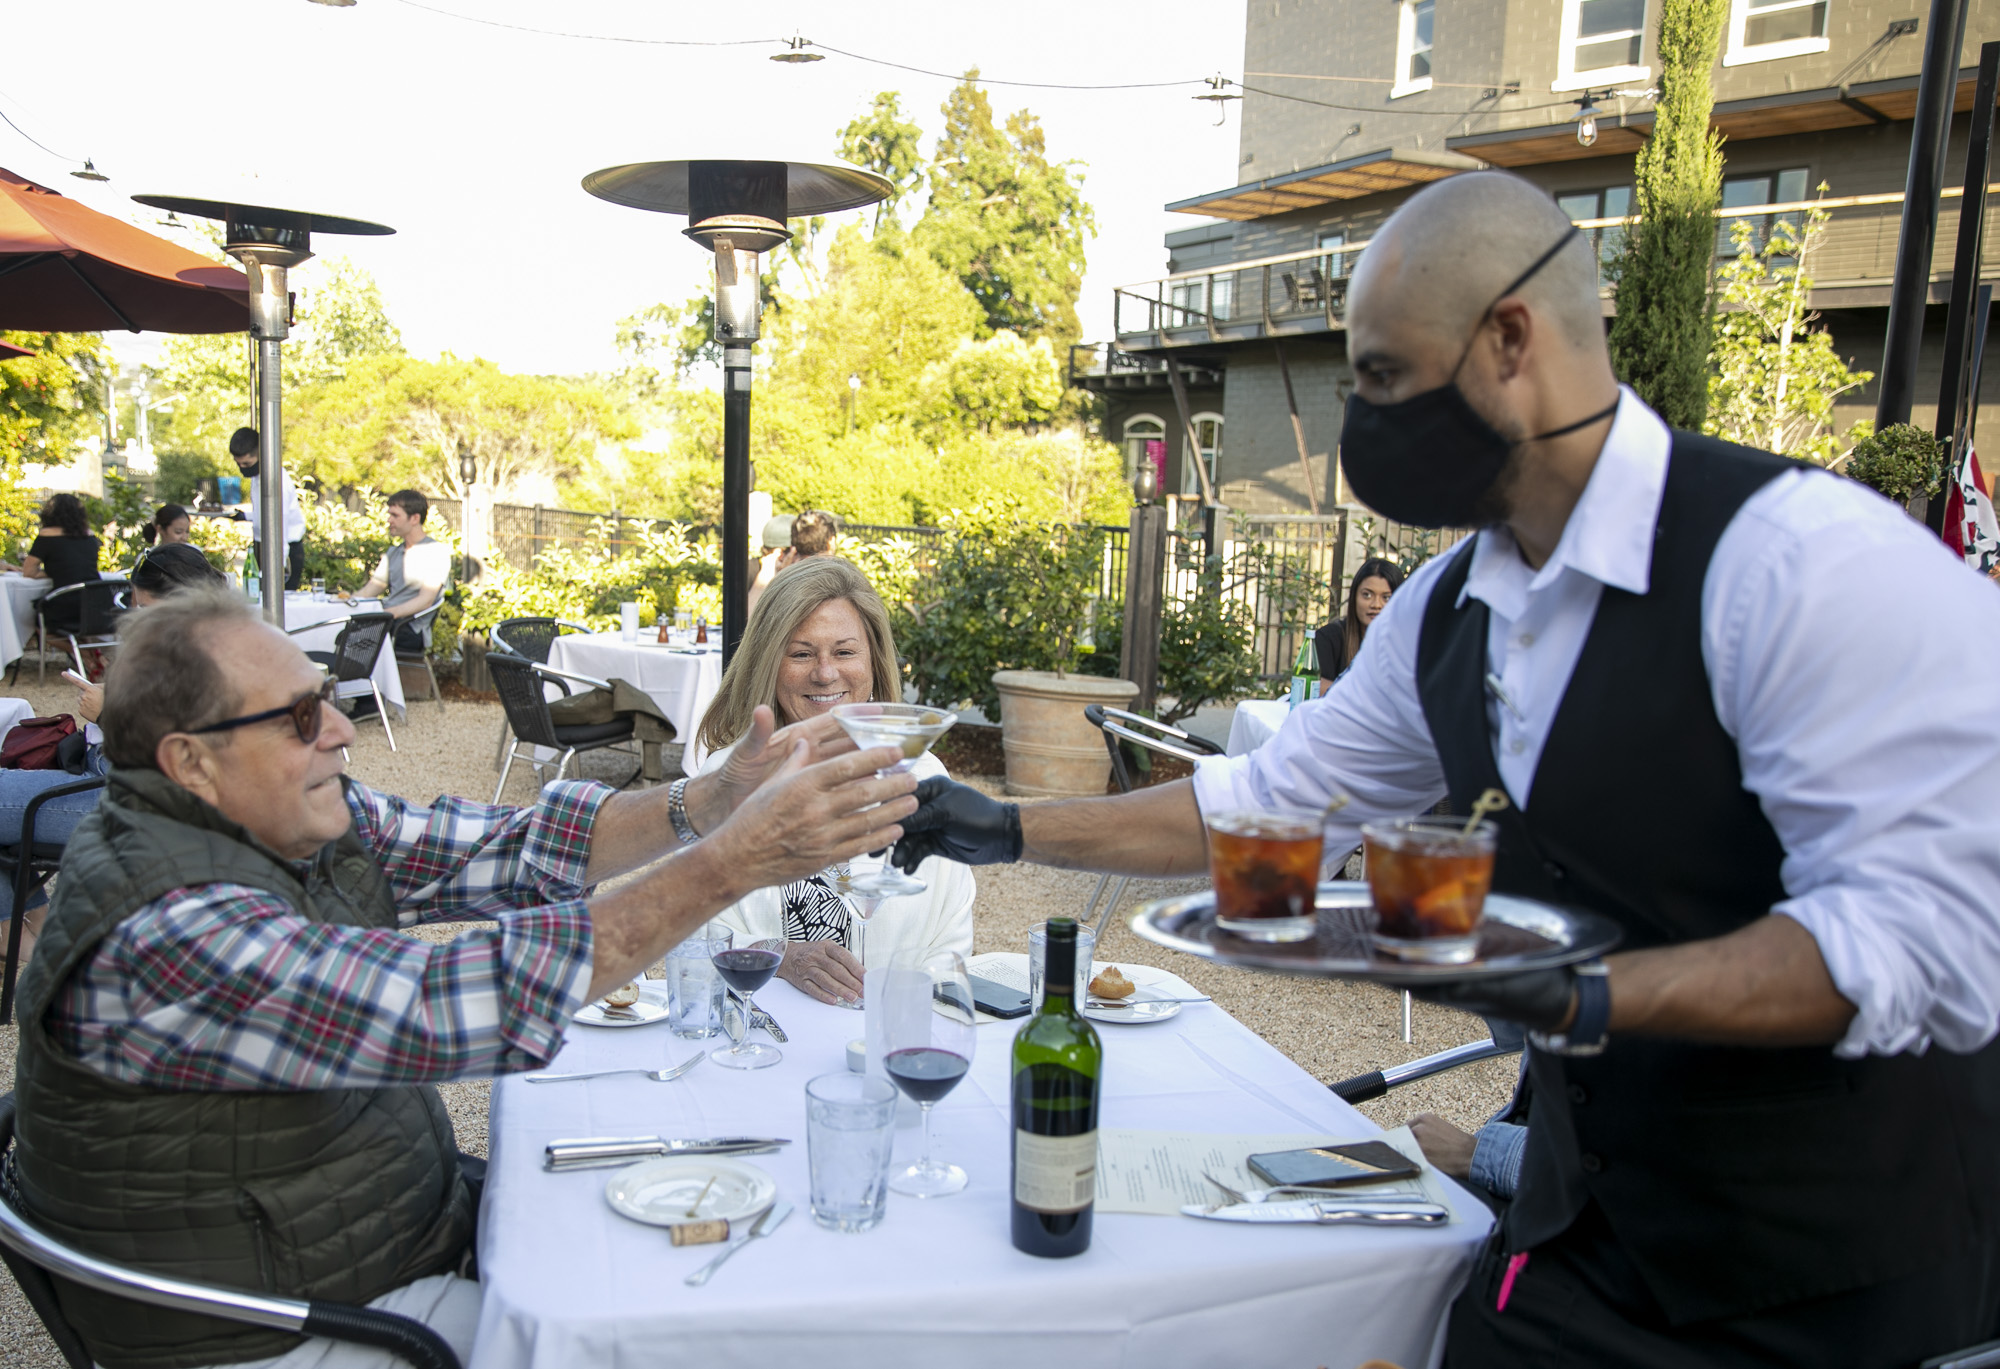 Doug Mahon reaches for a cocktail from a masked server at Cole's Chop House in Downtown Napa on March 22, 2020. The popular steakhouse reopened immediately following the announcement that Napa restaurants could begin dine-in service. Photo by Anne Wernikoff for CalMatters